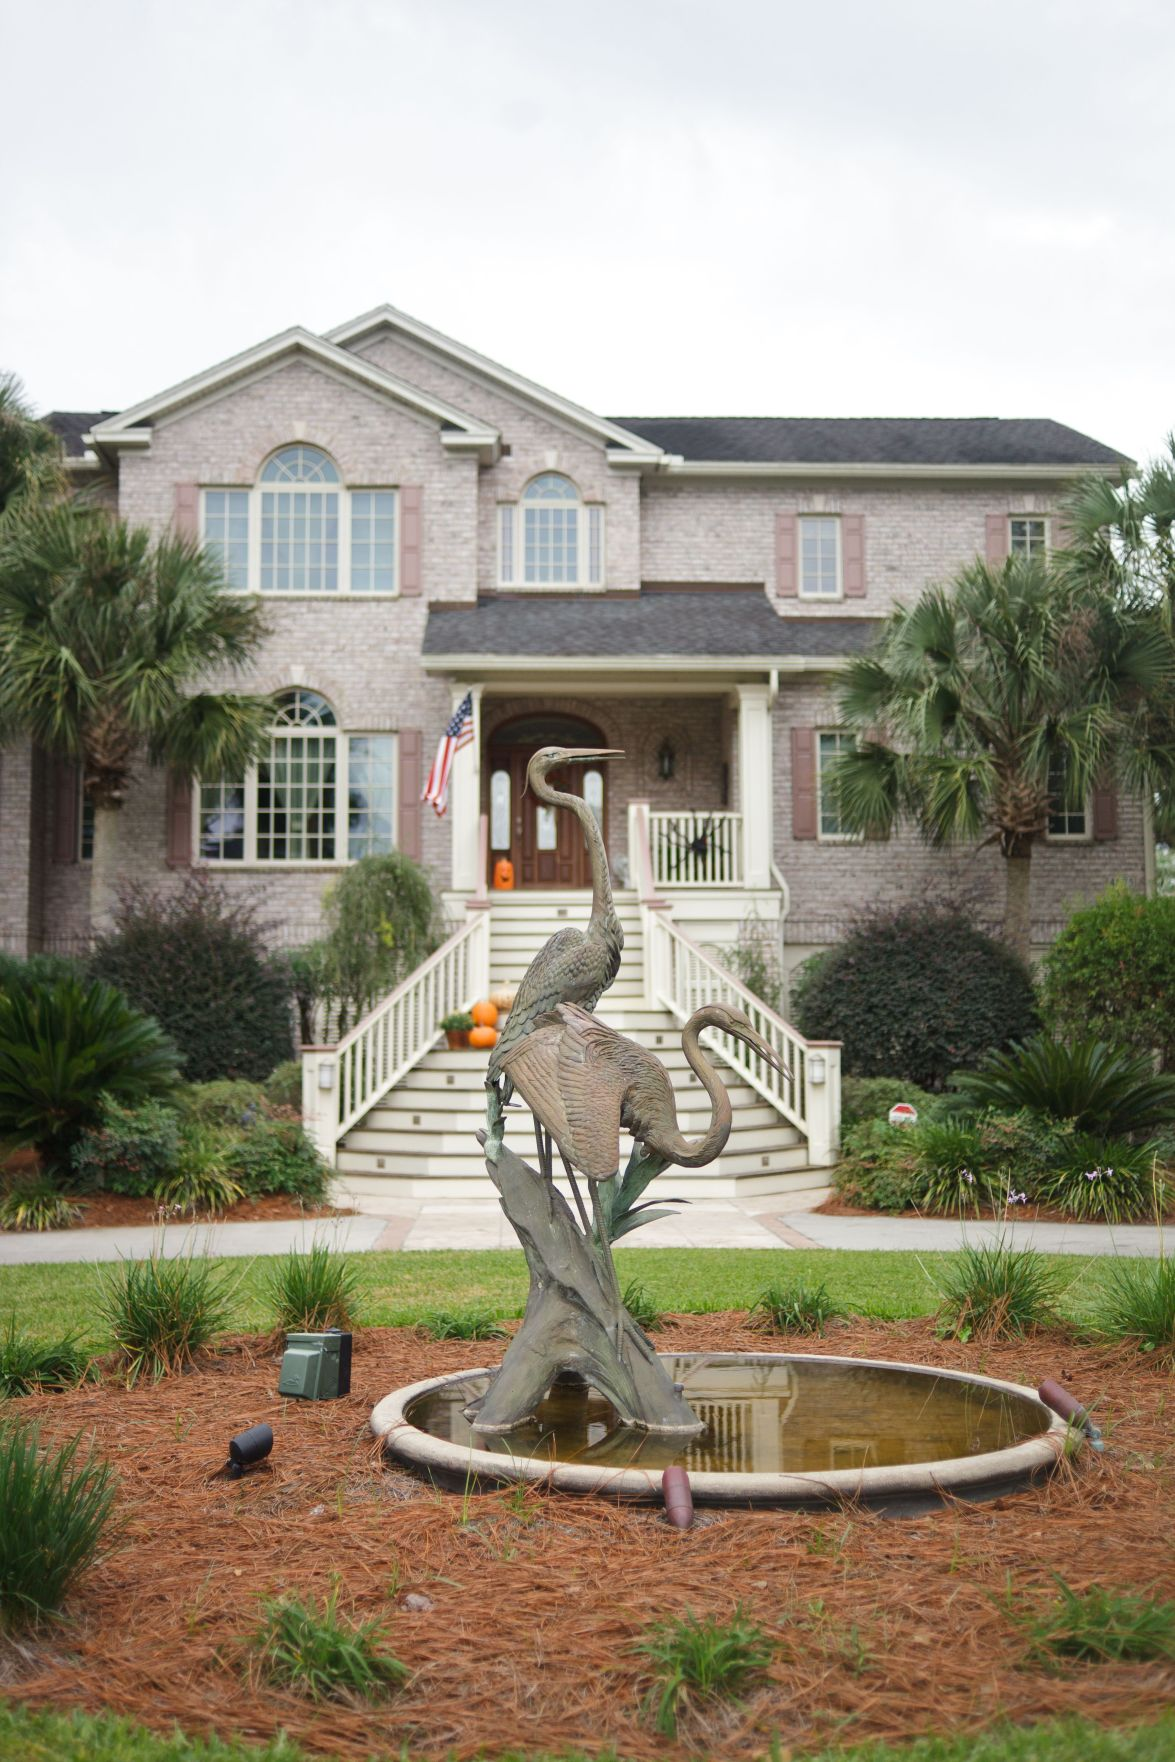 Valued Luxury: Bottoming prices, greater Charleston's growing popularity producing deals among million dollar homes